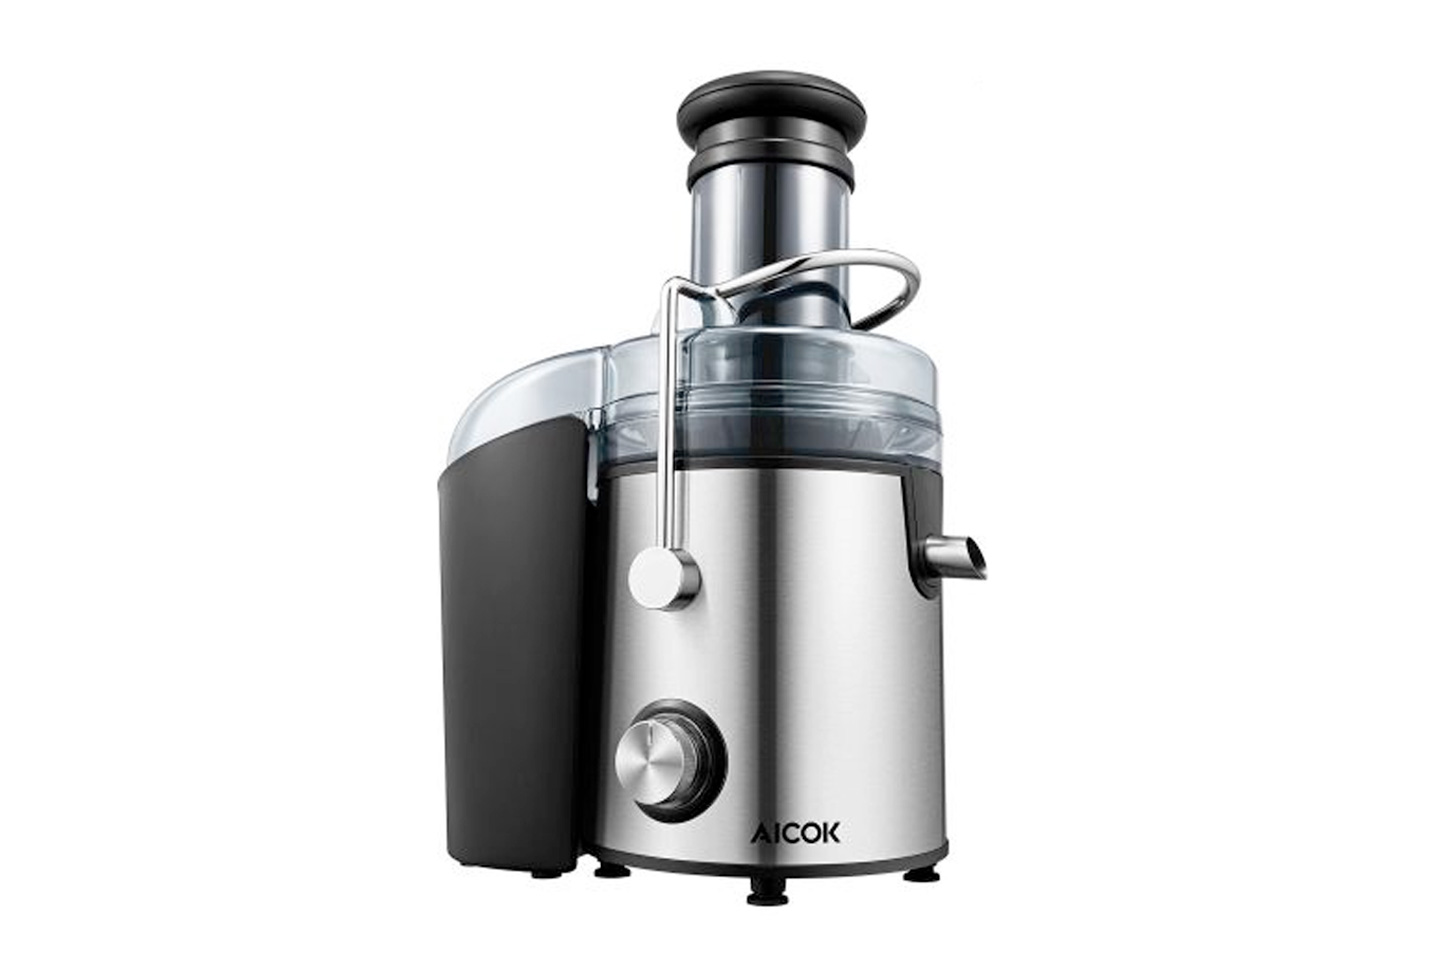 AICOK GS-332 1000W Centrifugal Juicer Review | HeartyBlends.co